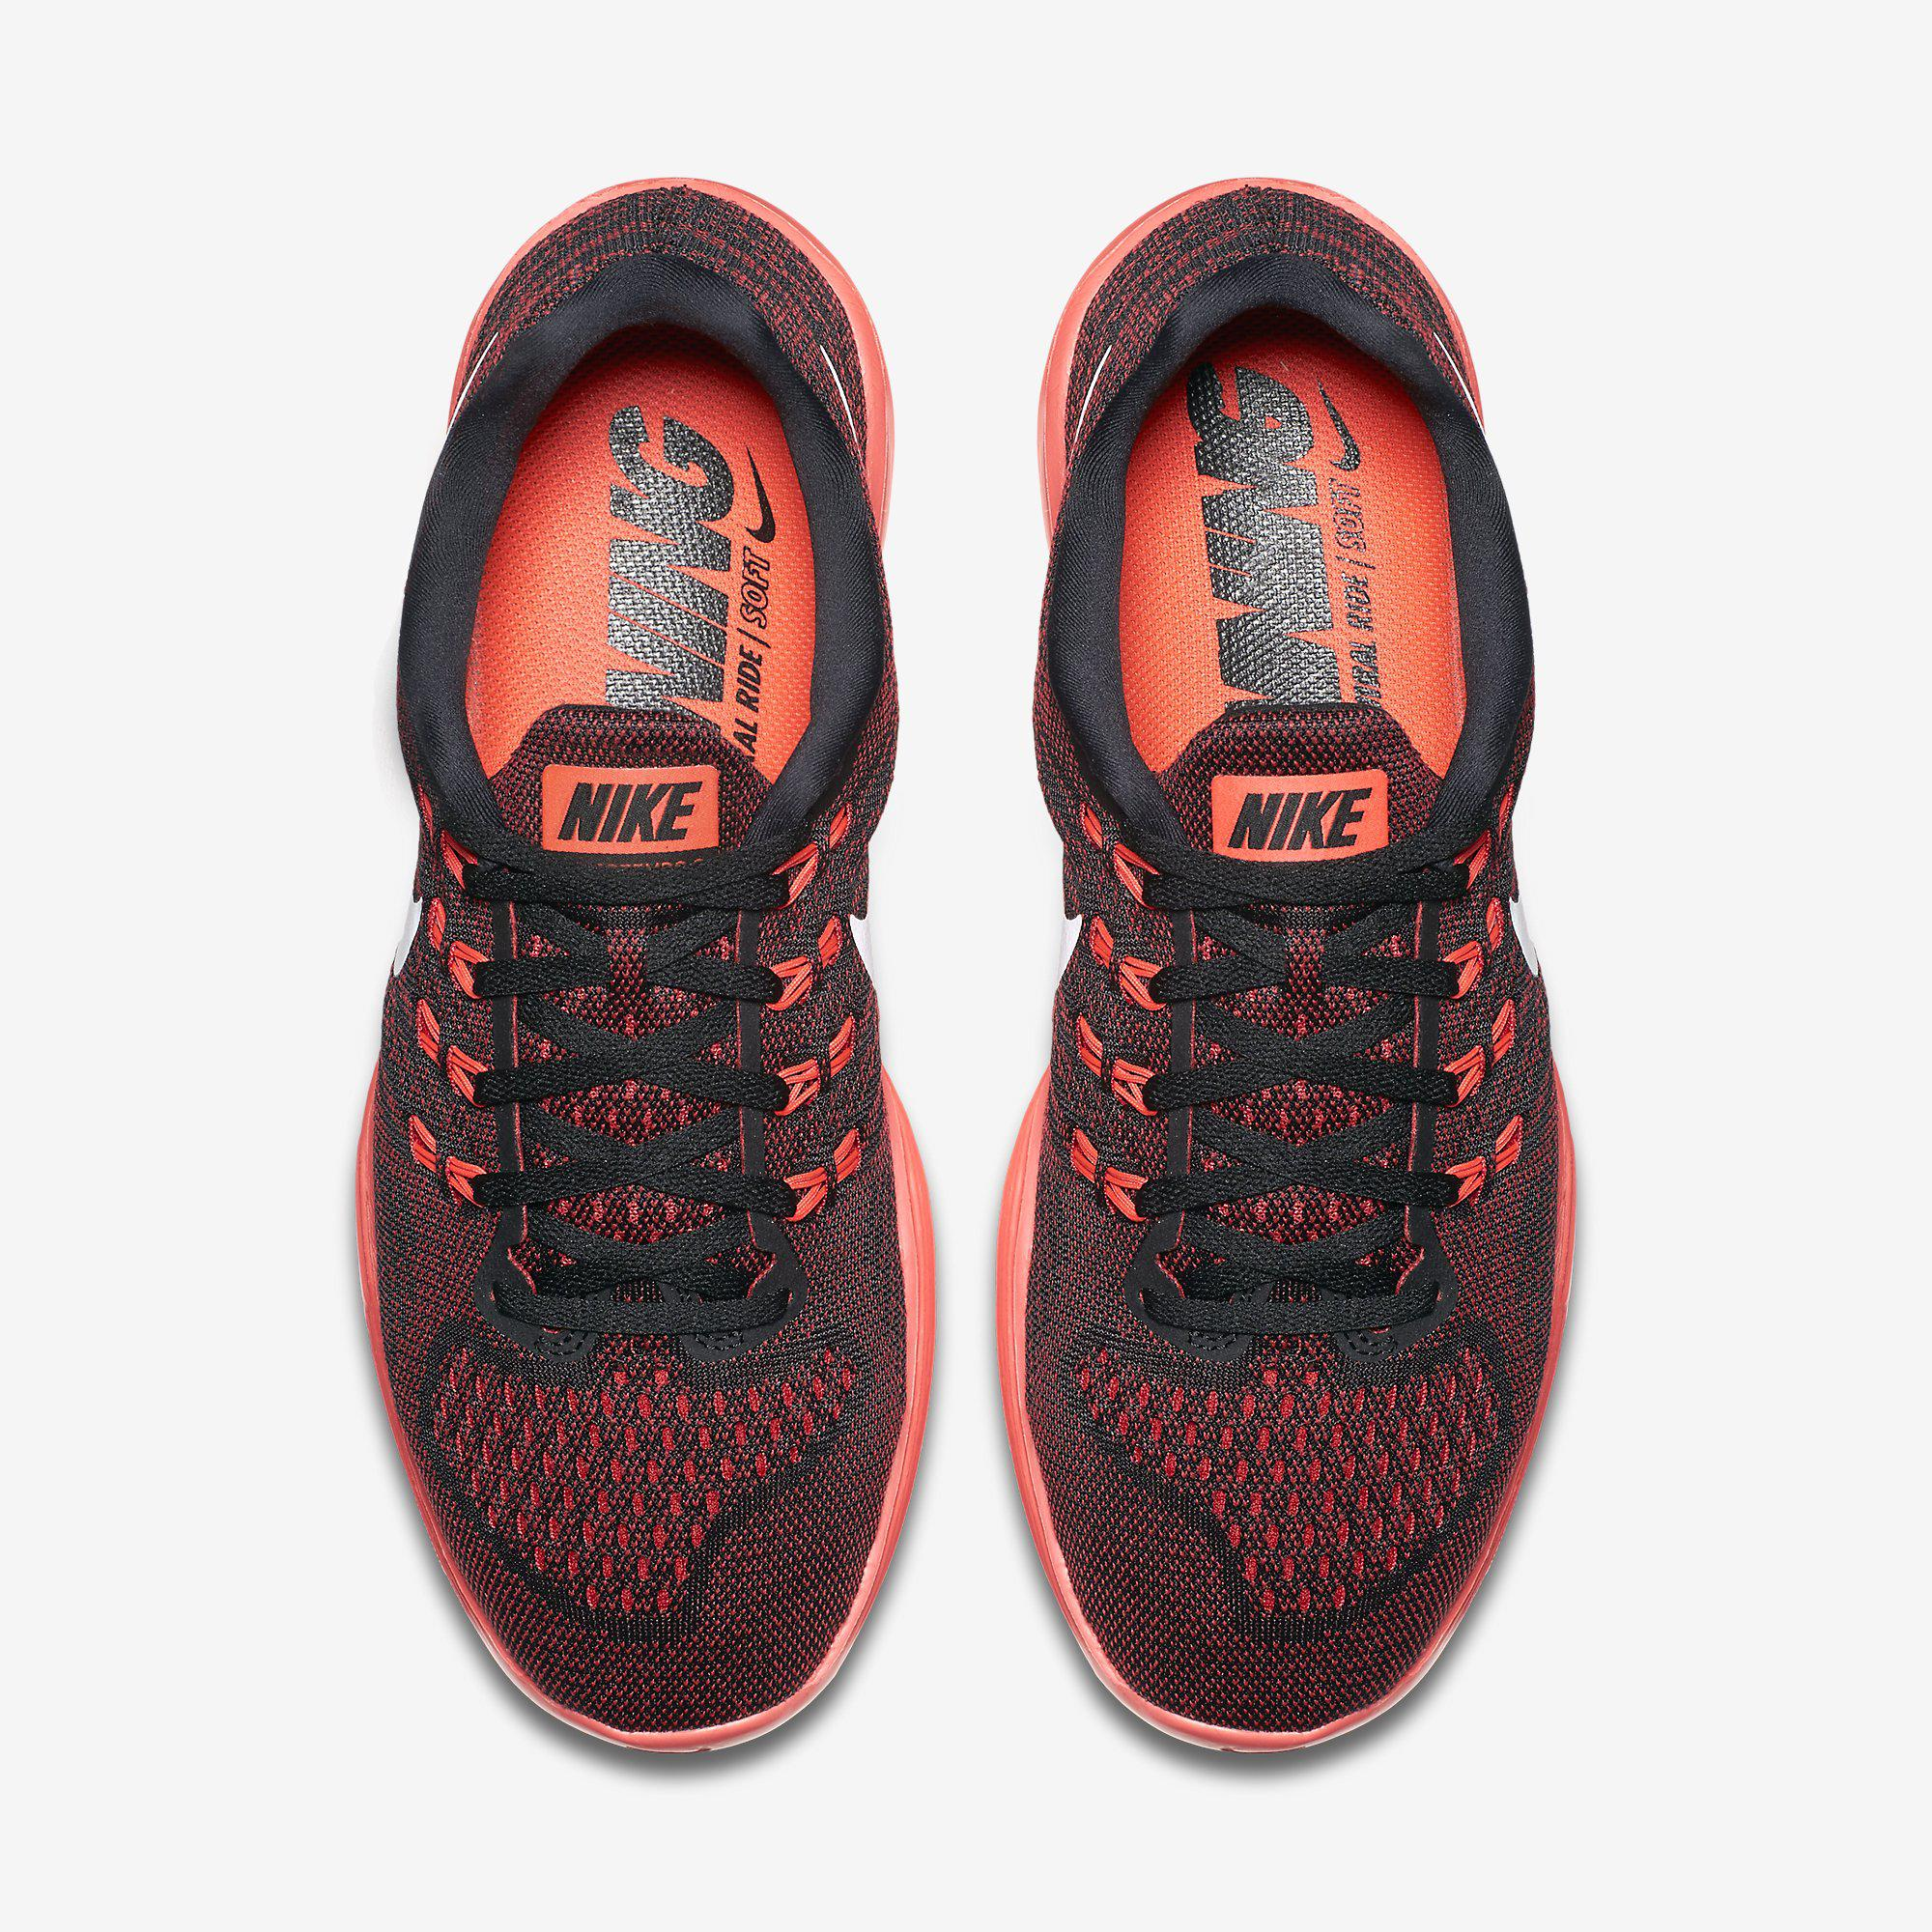 where to buy nike mens lunartempo 2 running shoes red black 2543e aecd8 742605cfef